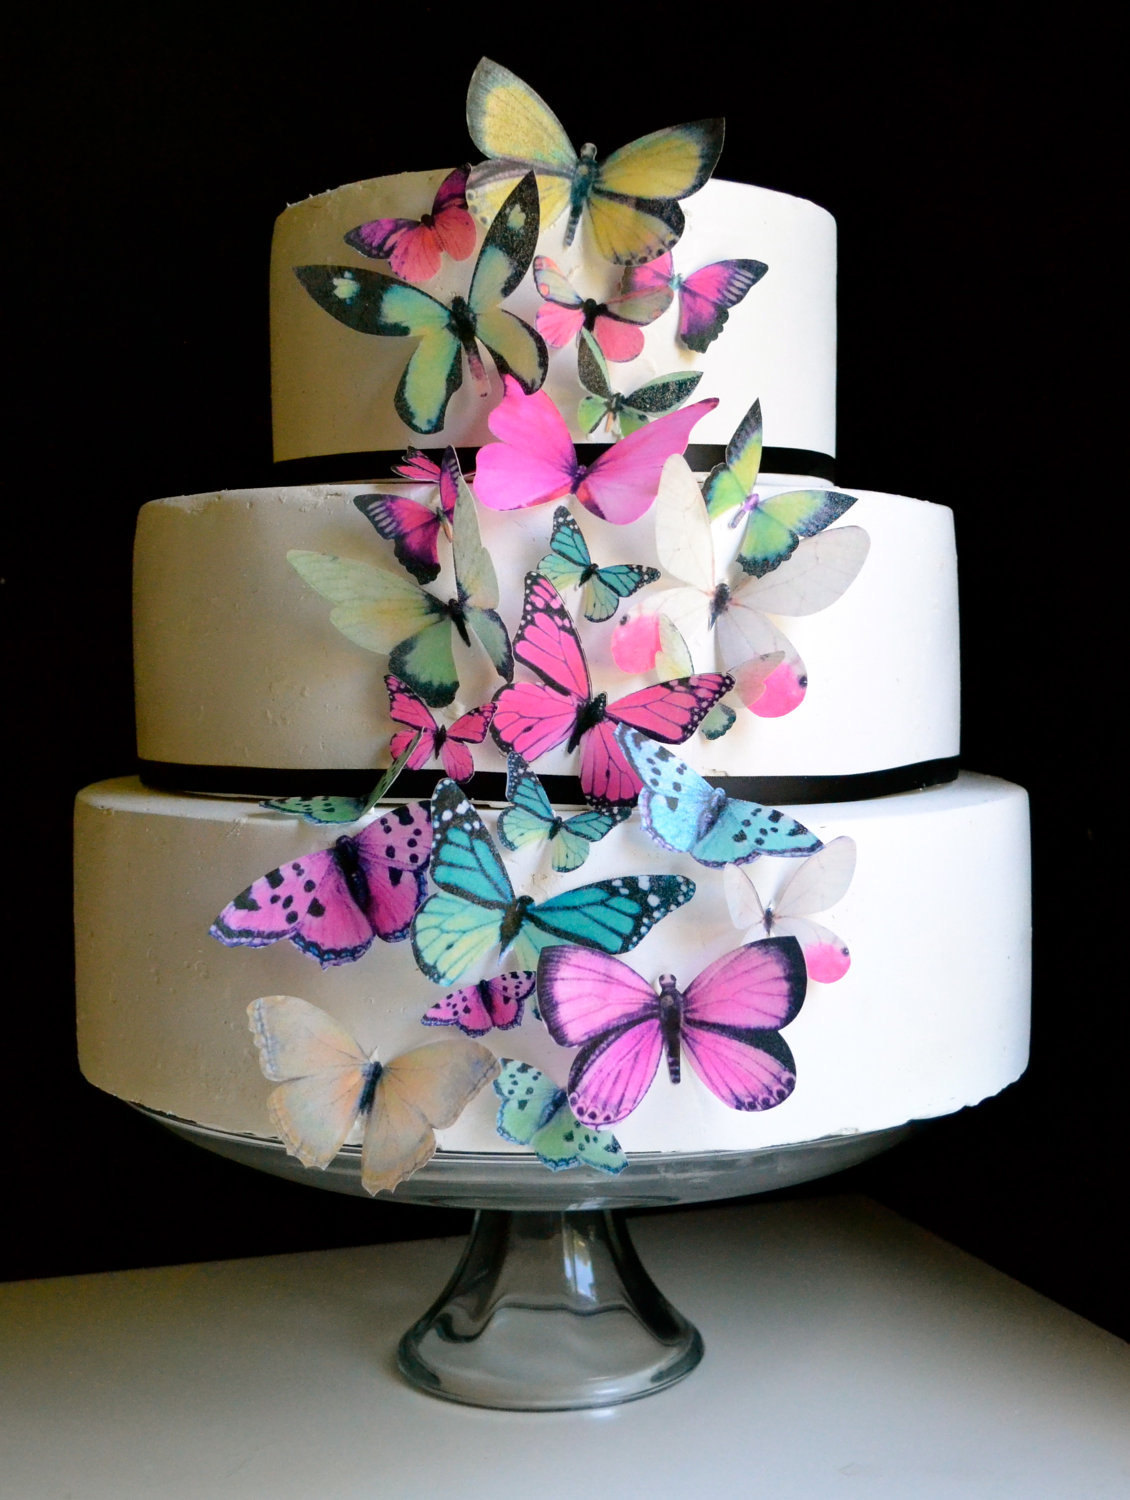 Birthday Cake with Butterflies